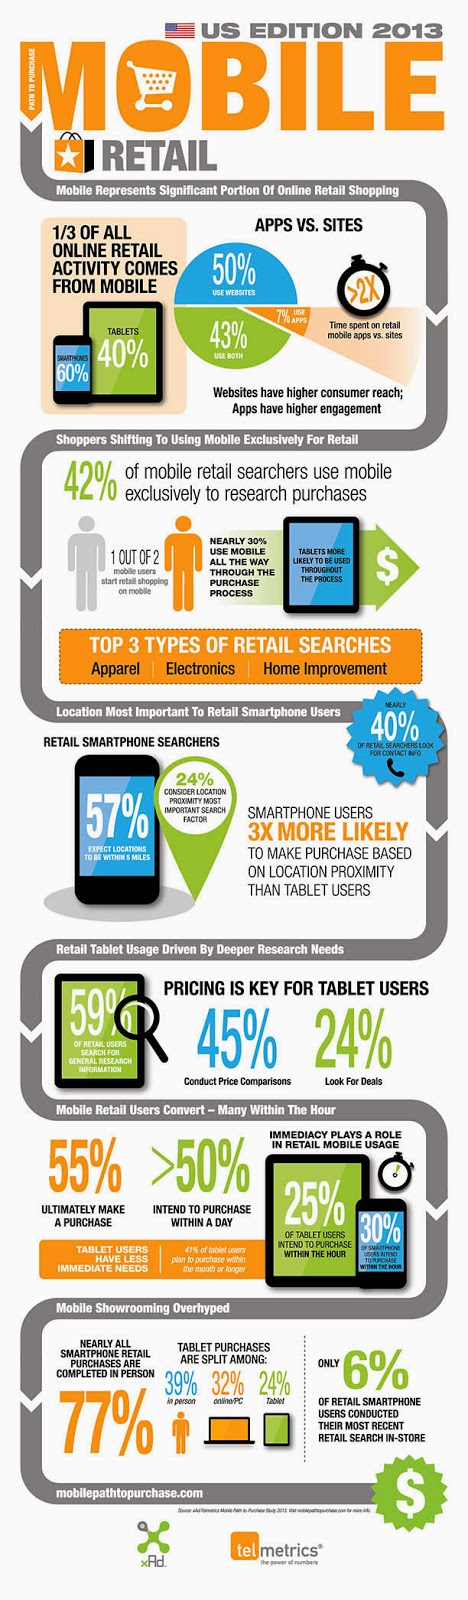 Mobile shopping and the rise of retail apps